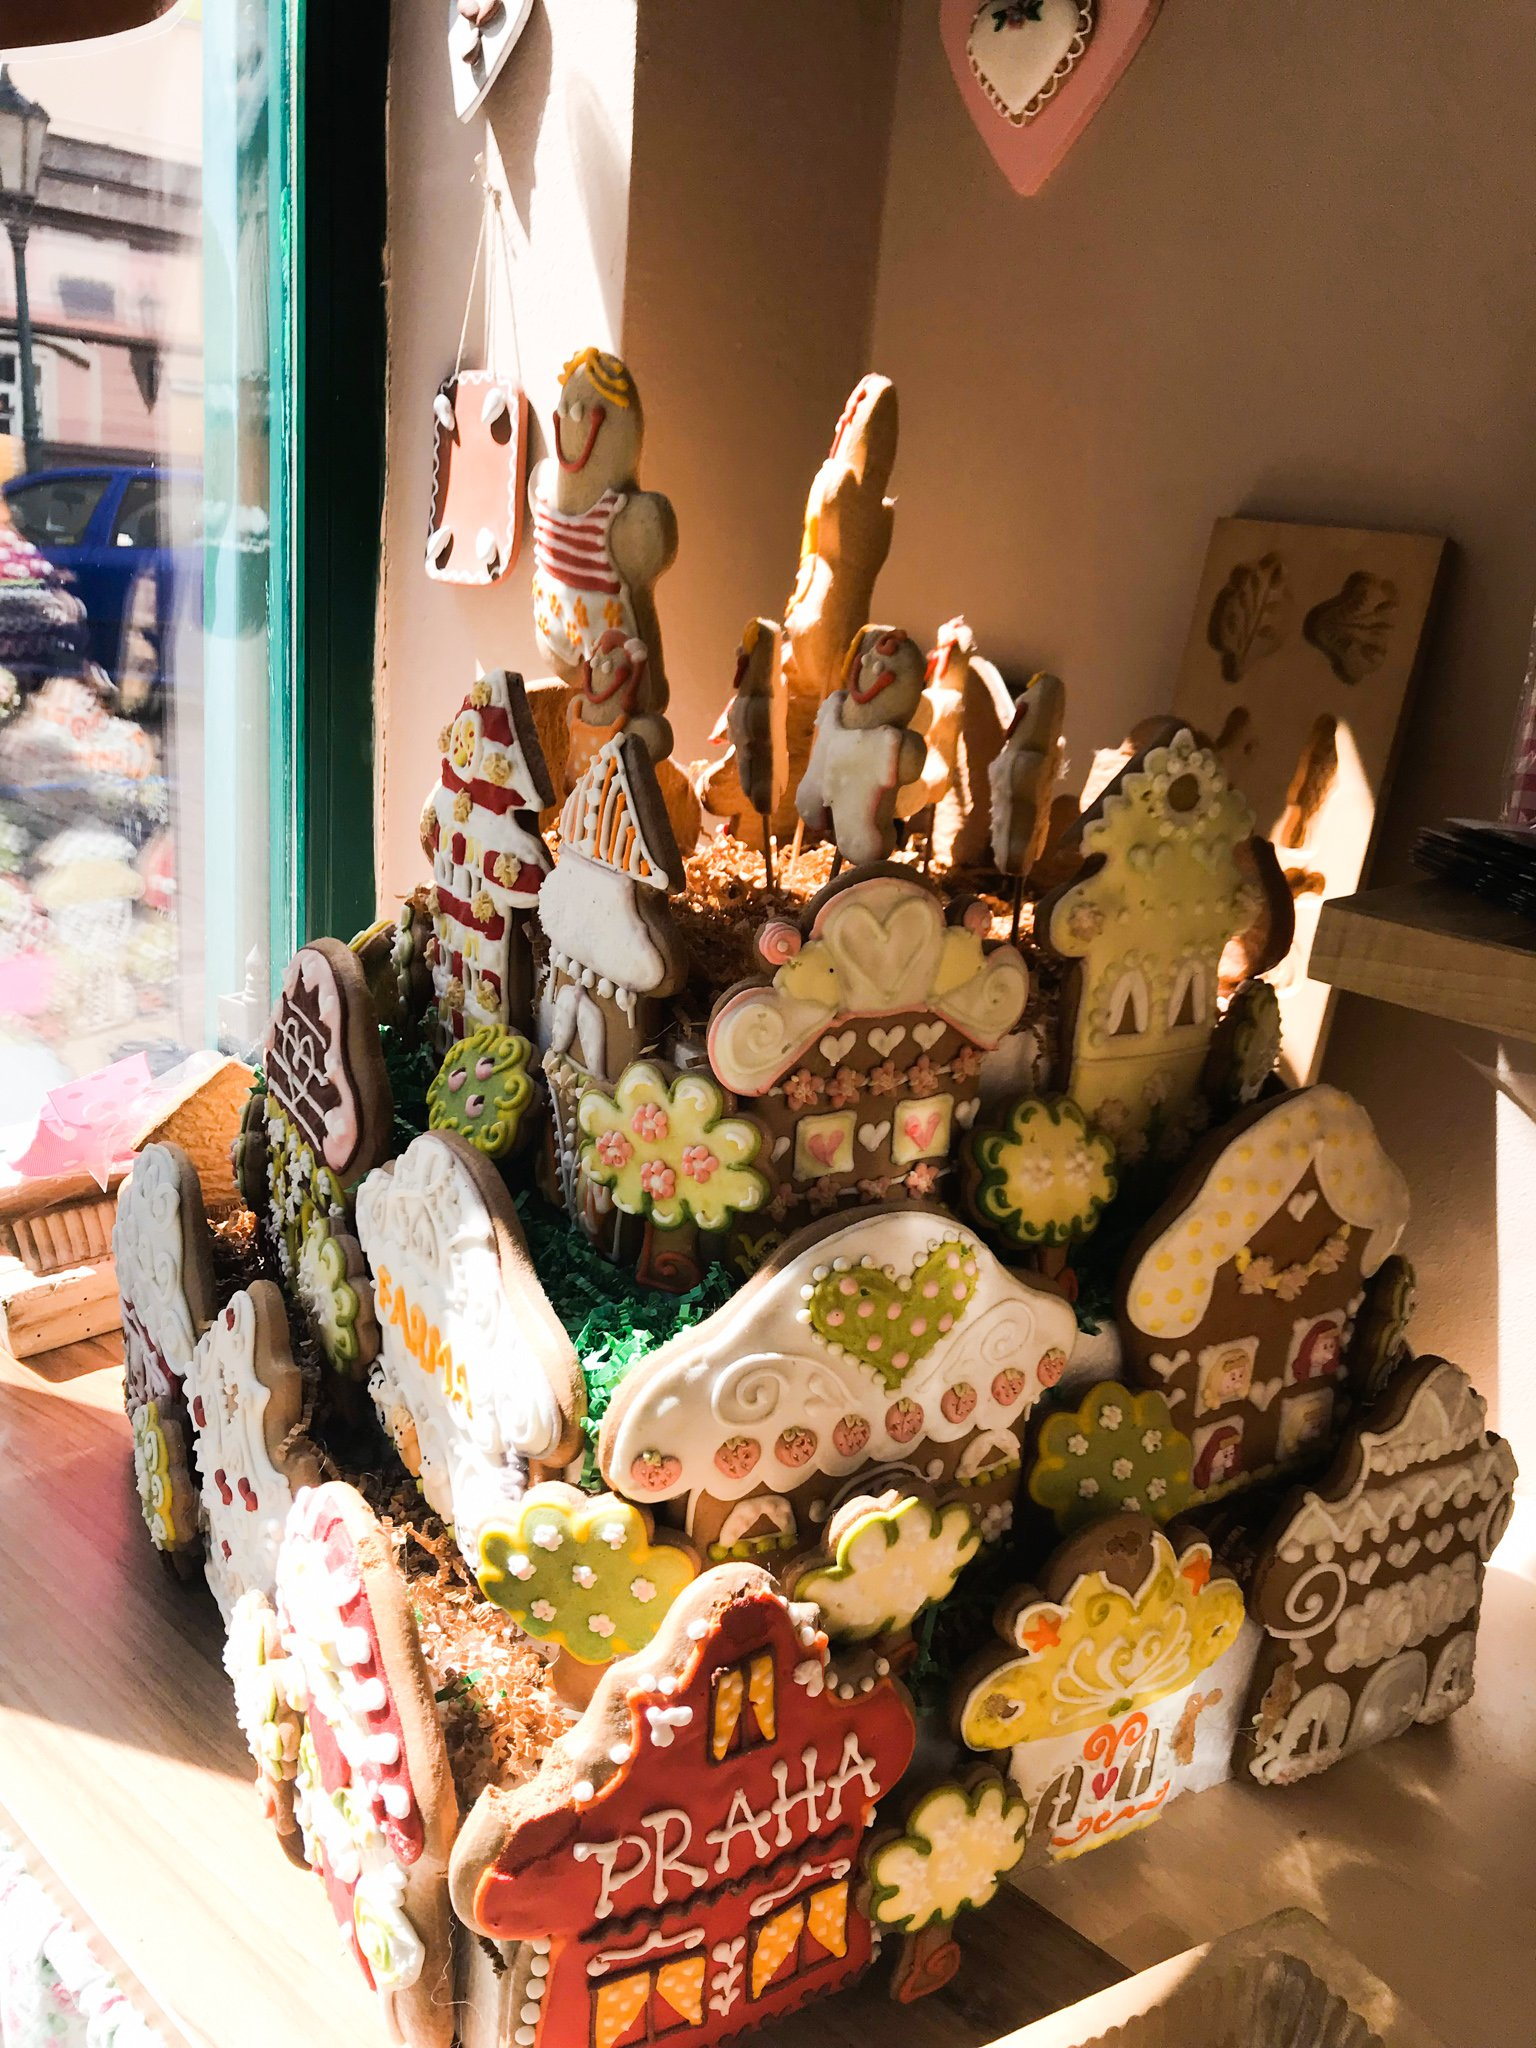 An elaborate gingerbread house in a Prague bakery features multiple levels, colorful icing, and fanciful shapes.